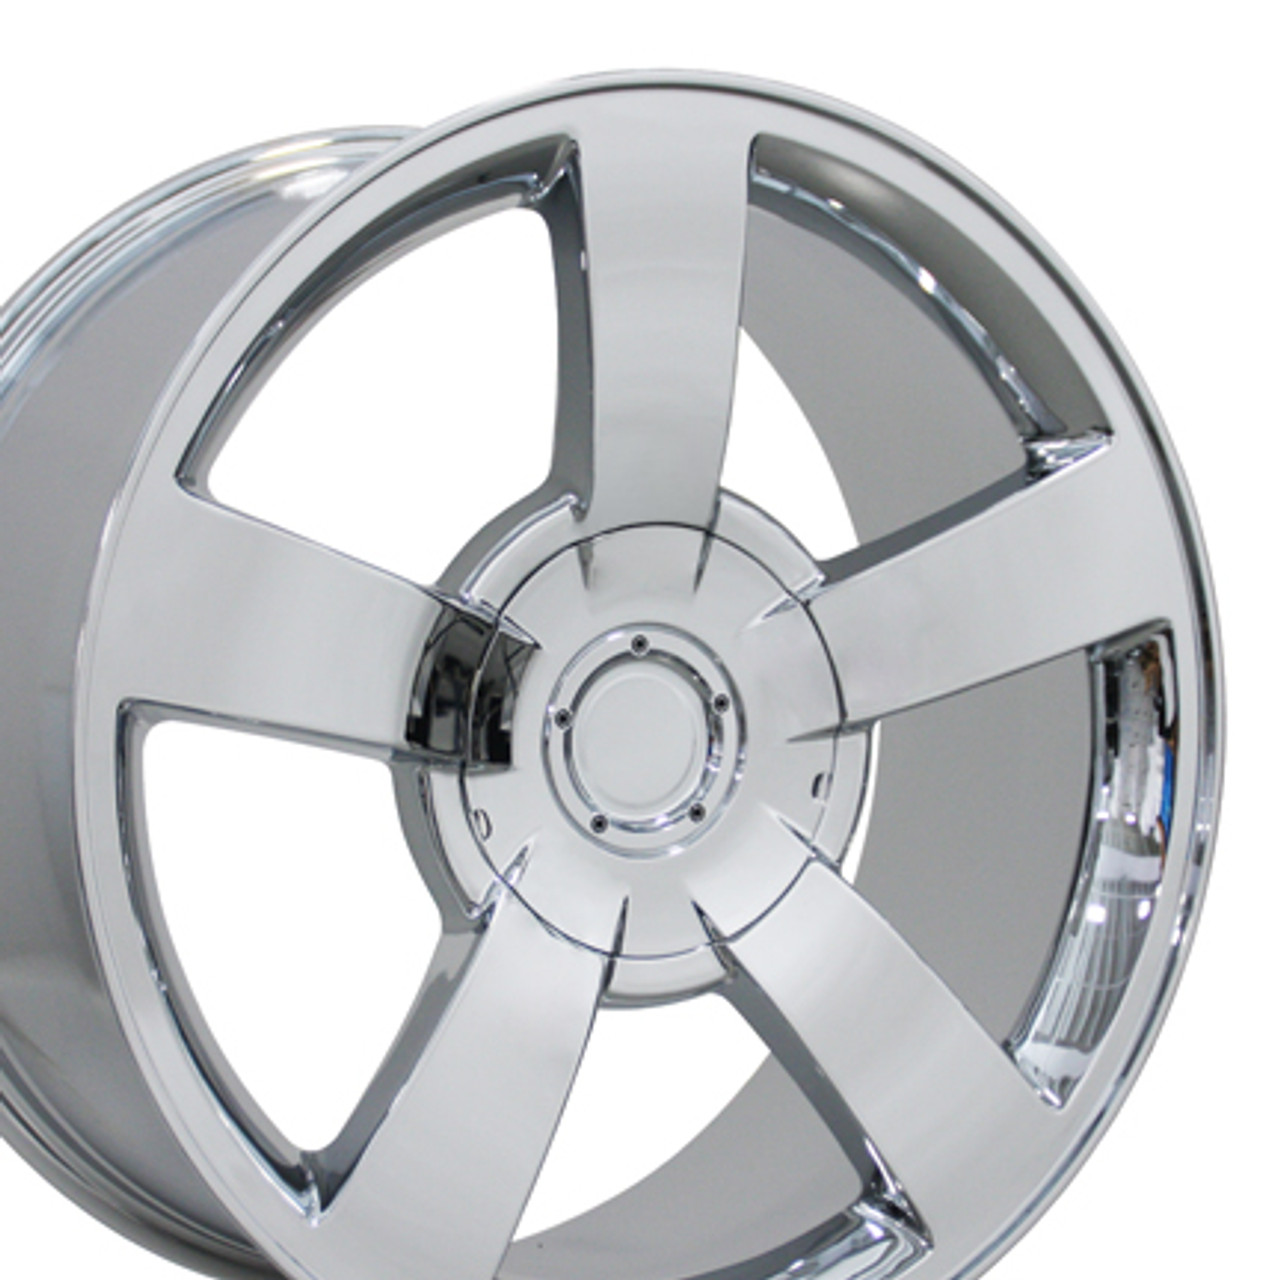 22 Fits Chevrolet Silverado Ss Wheels Rims Chrome Set Of 4 22x10 Hollander 5243